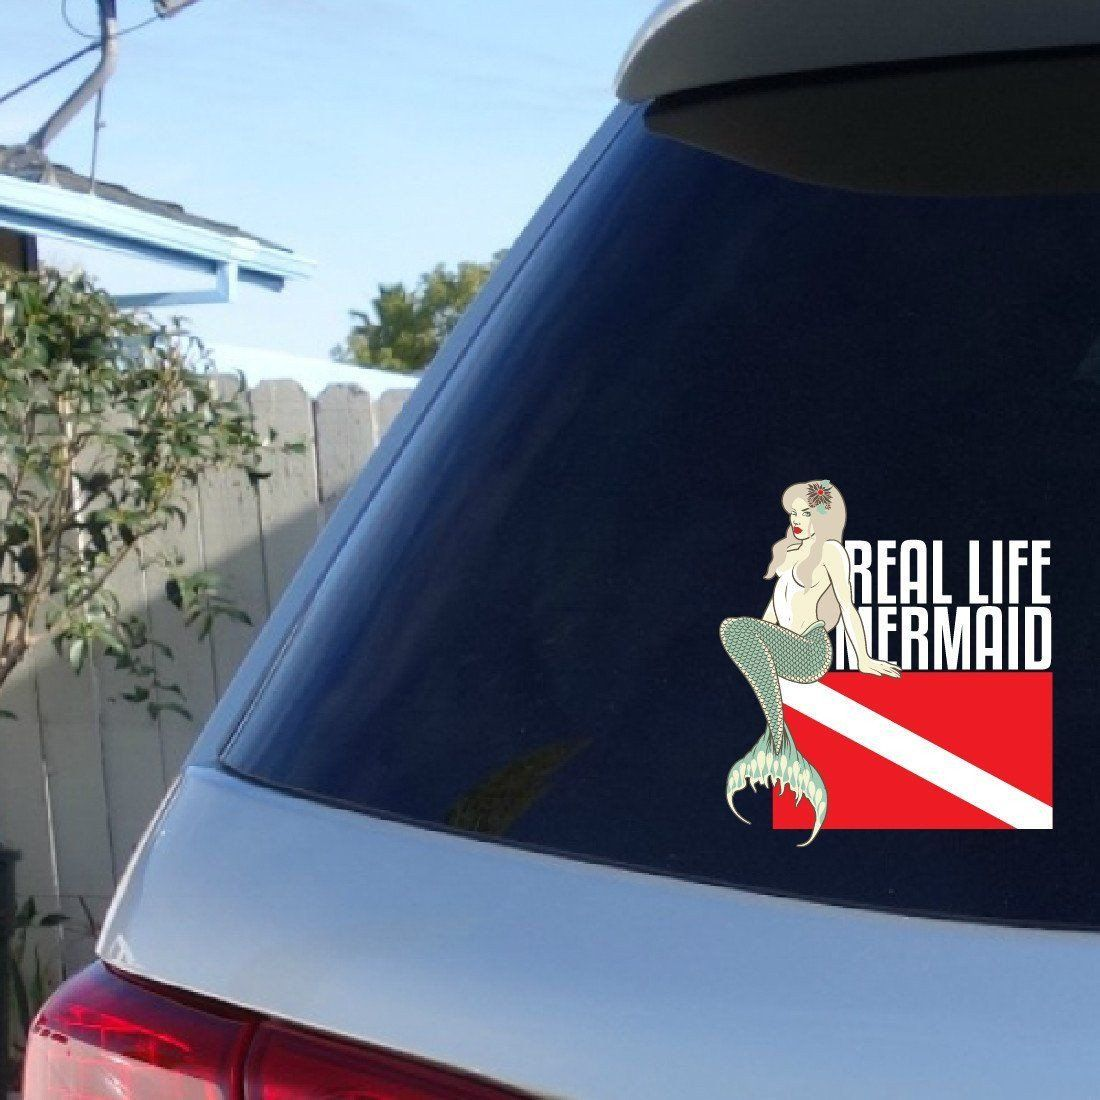 Treat your car to this awesome real life mermaid car sticker our stickers are printed on vinyl media that can get wet and take the abuse paper stickers